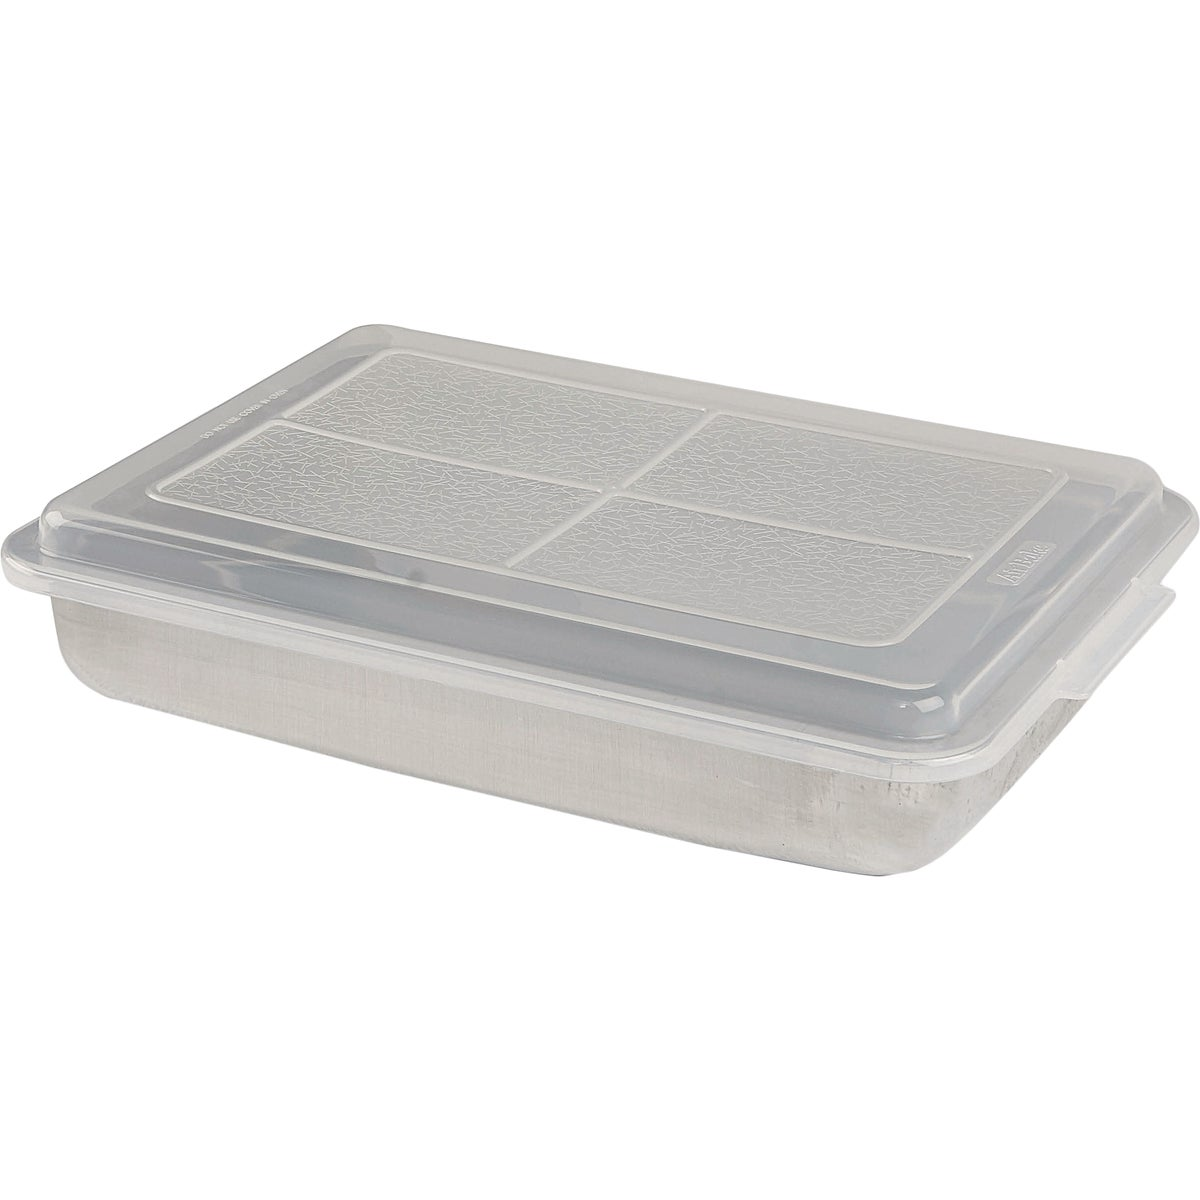 T-Fal/Wearever COVERED CAKE PAN 0980000PX